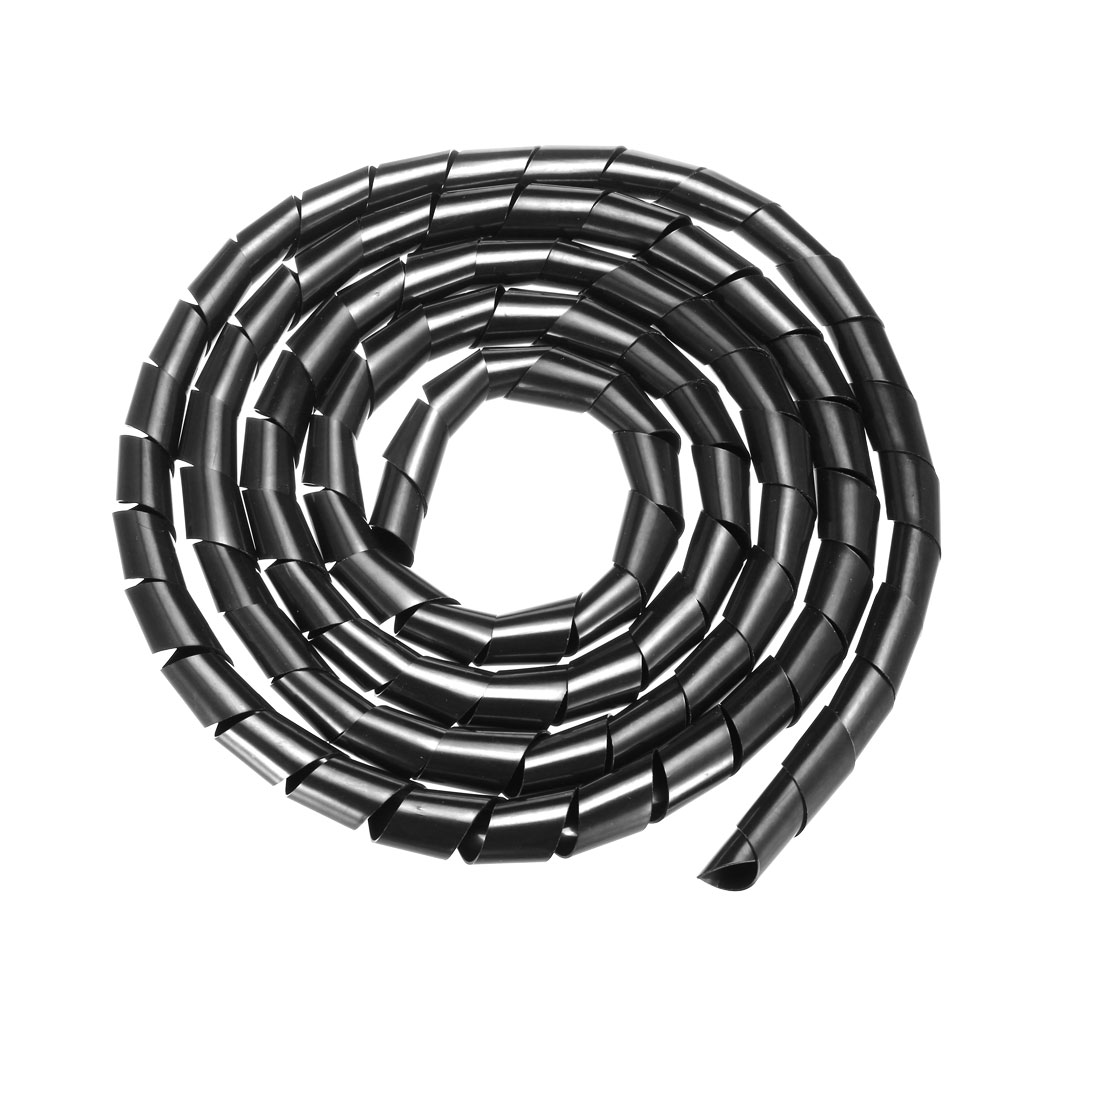 18mm Flexible Spiral Tube Cable Wire Wrap Computer Manage Cord 3Meter Black